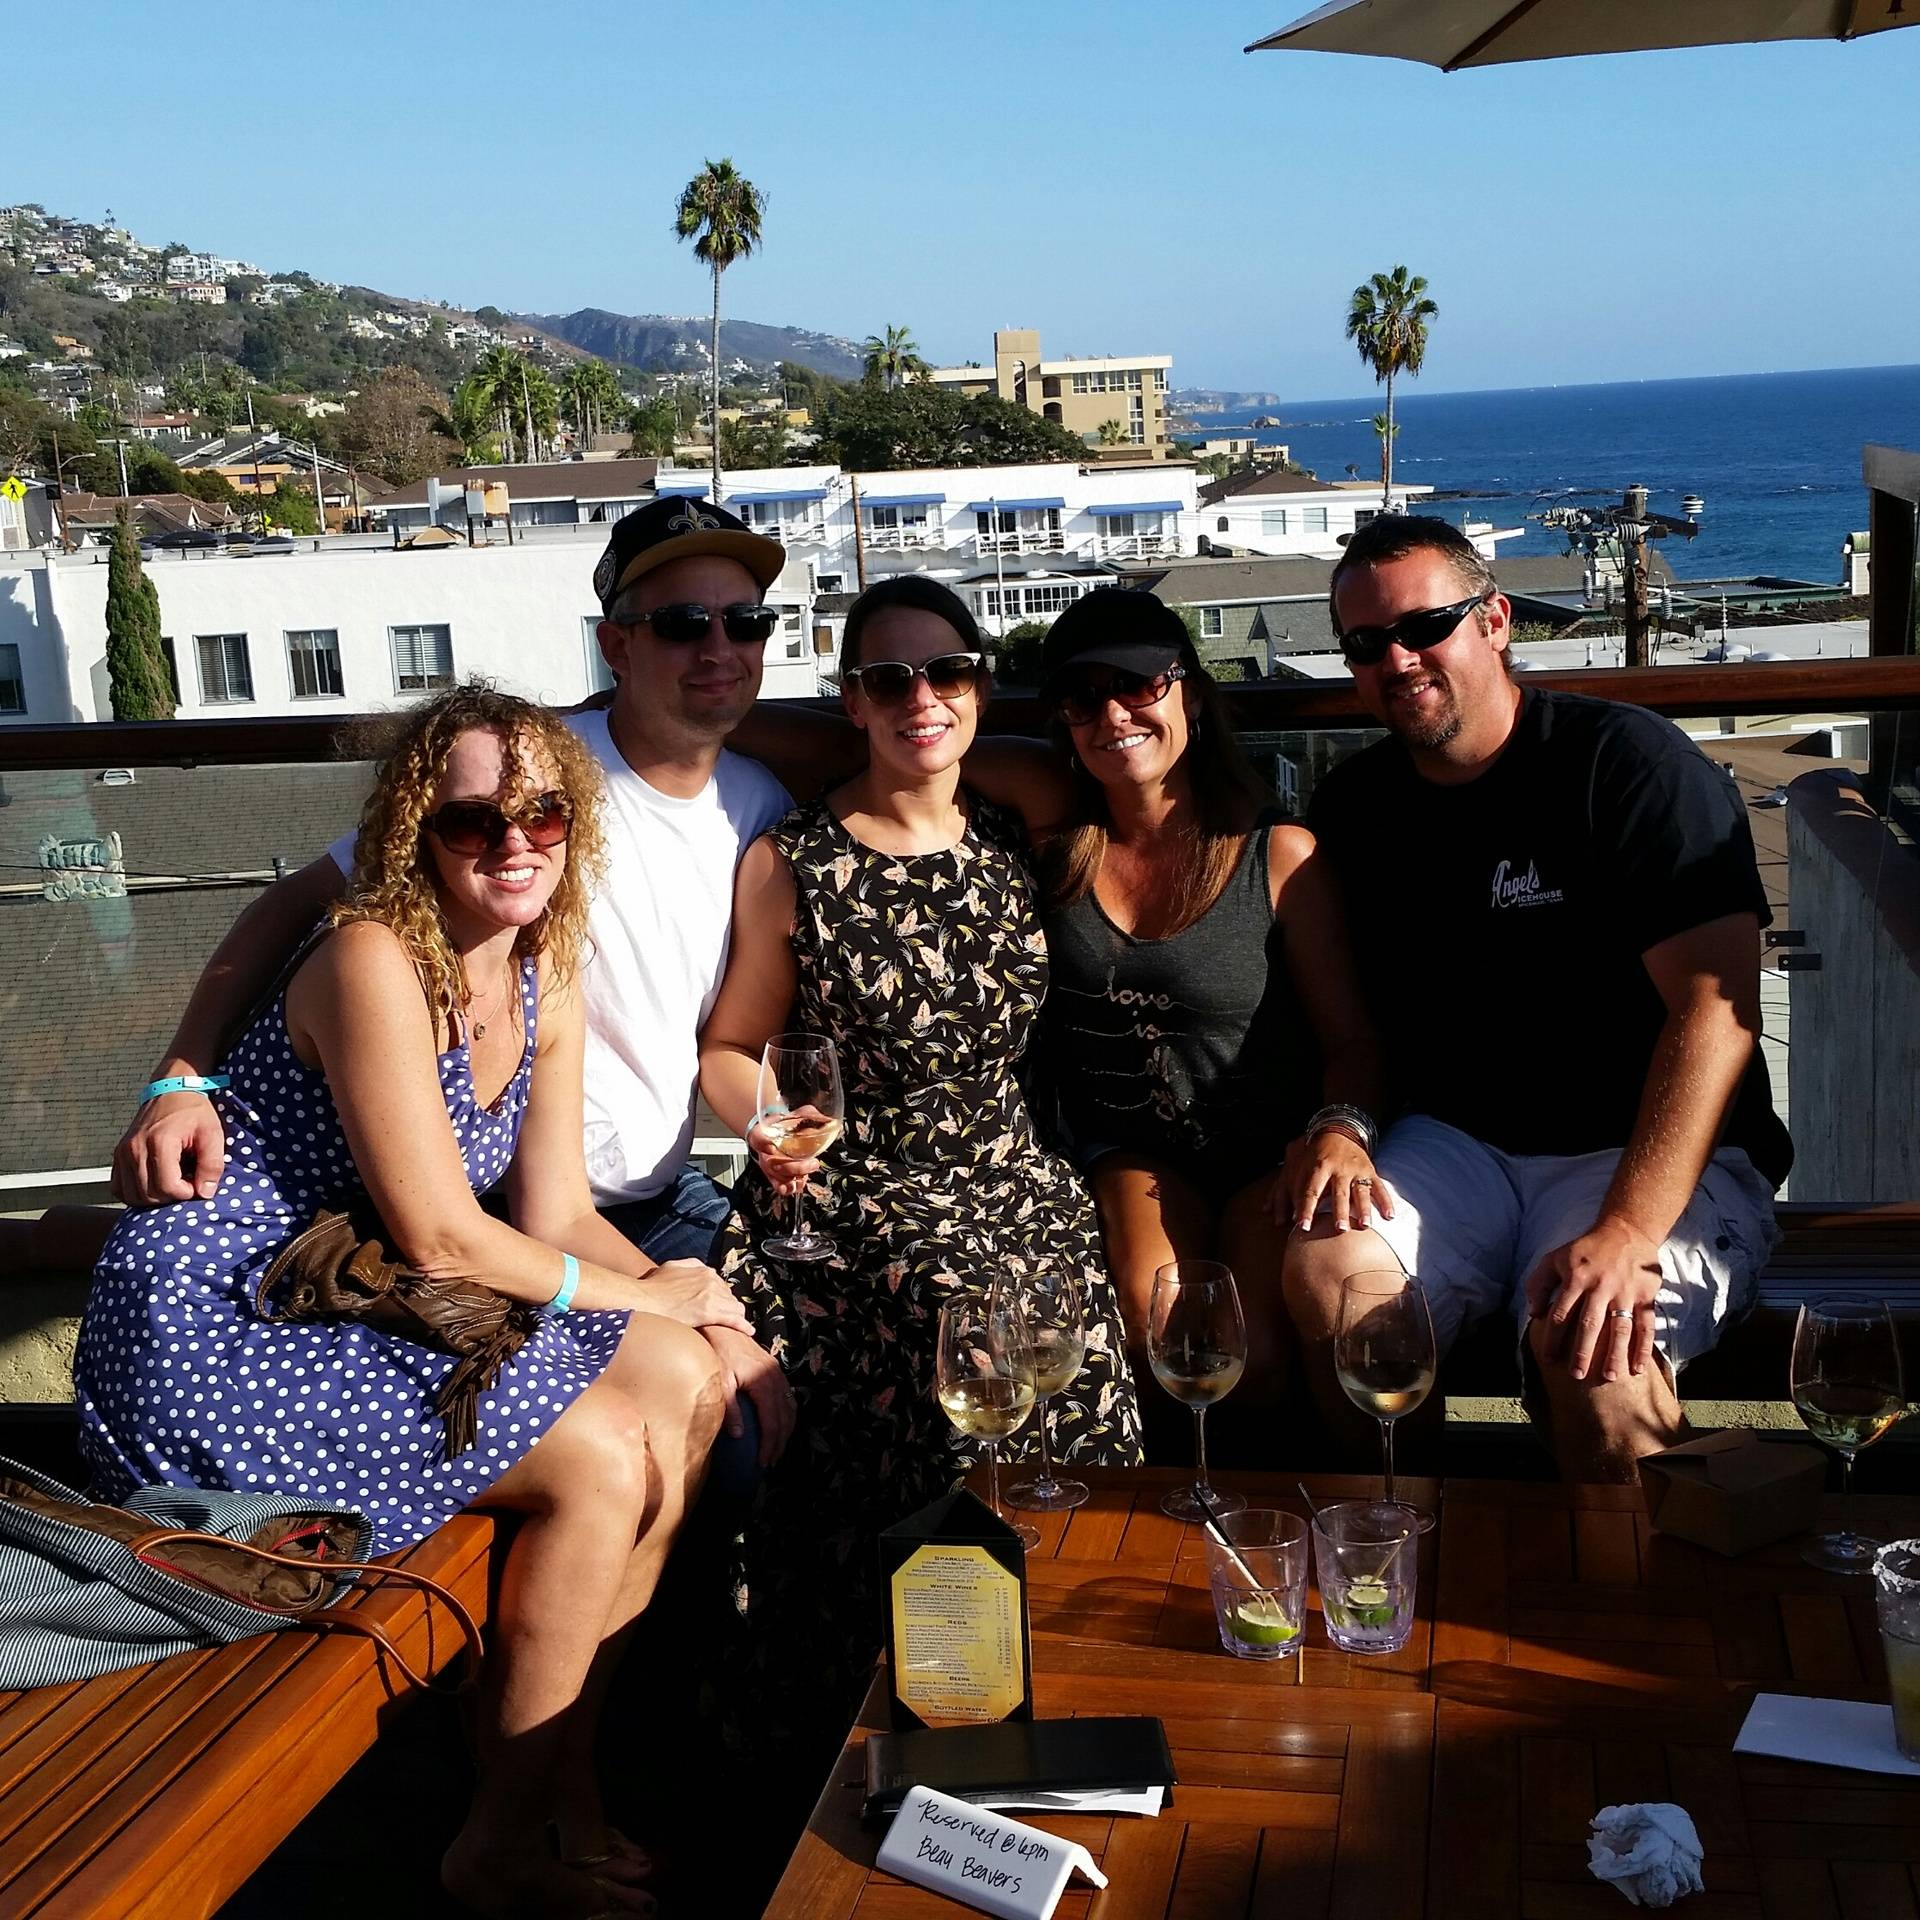 Chef Sue and Chef John enjoying some off time with friends at the Roof Top Lounge